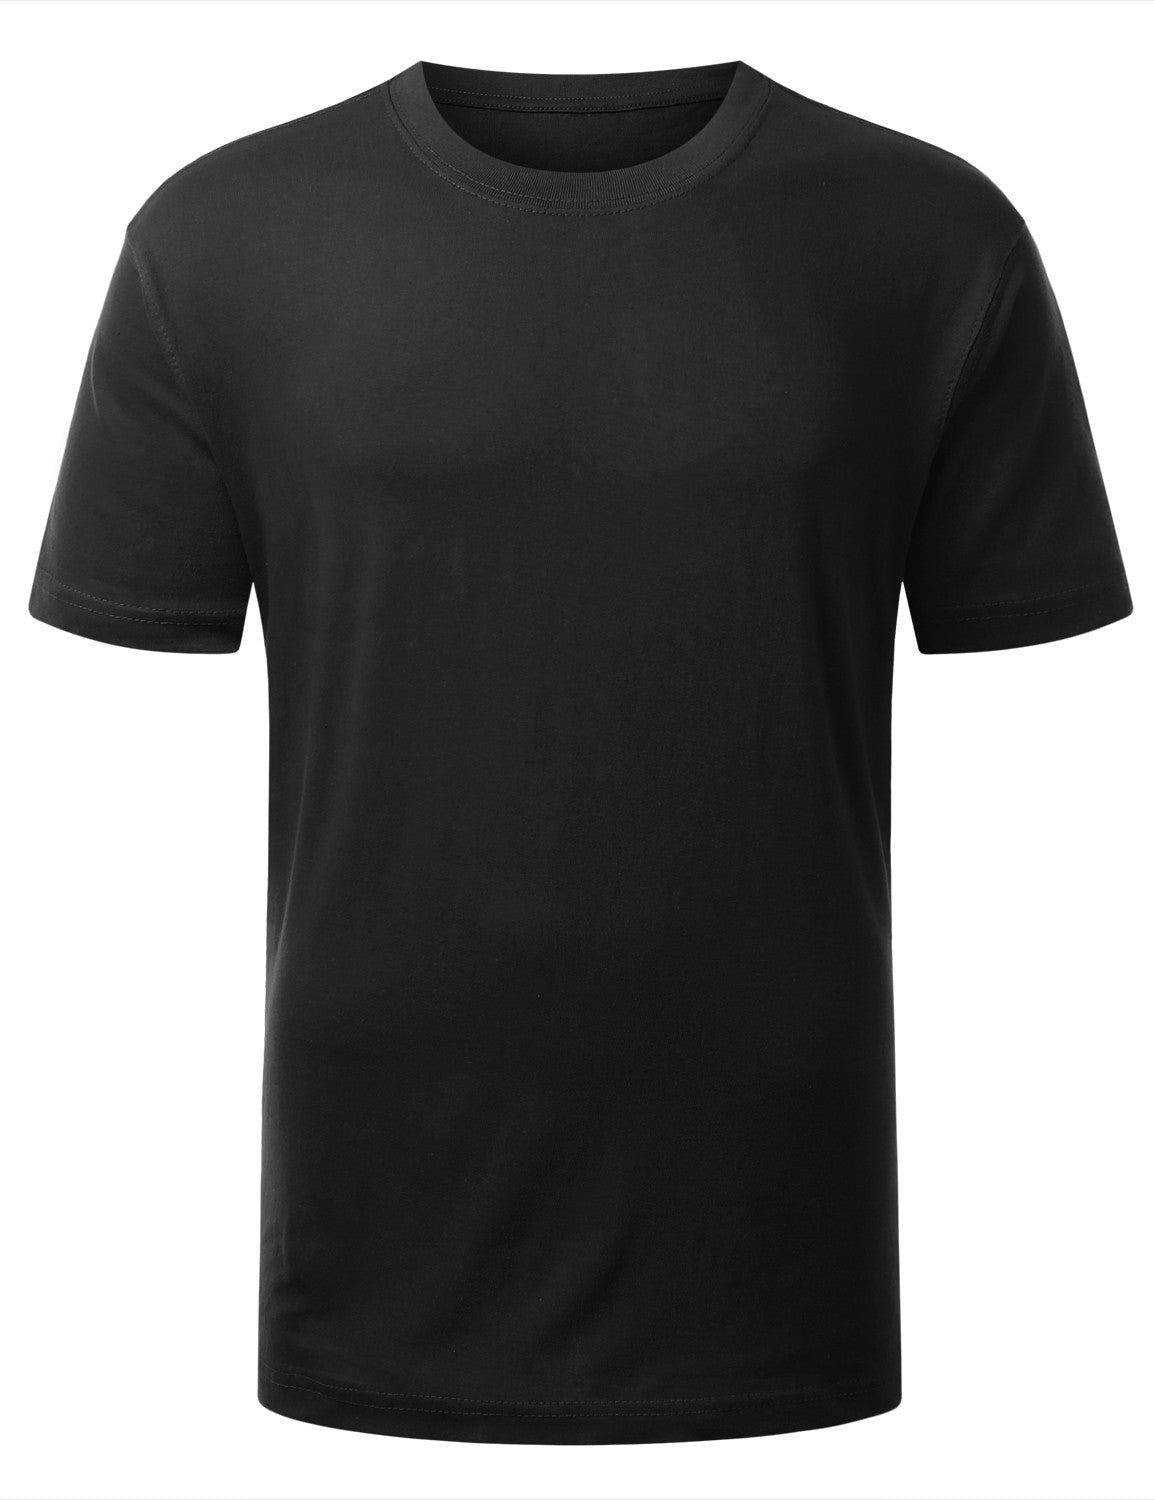 BLACK Classic Crewneck T Shirt - URBANCREWS